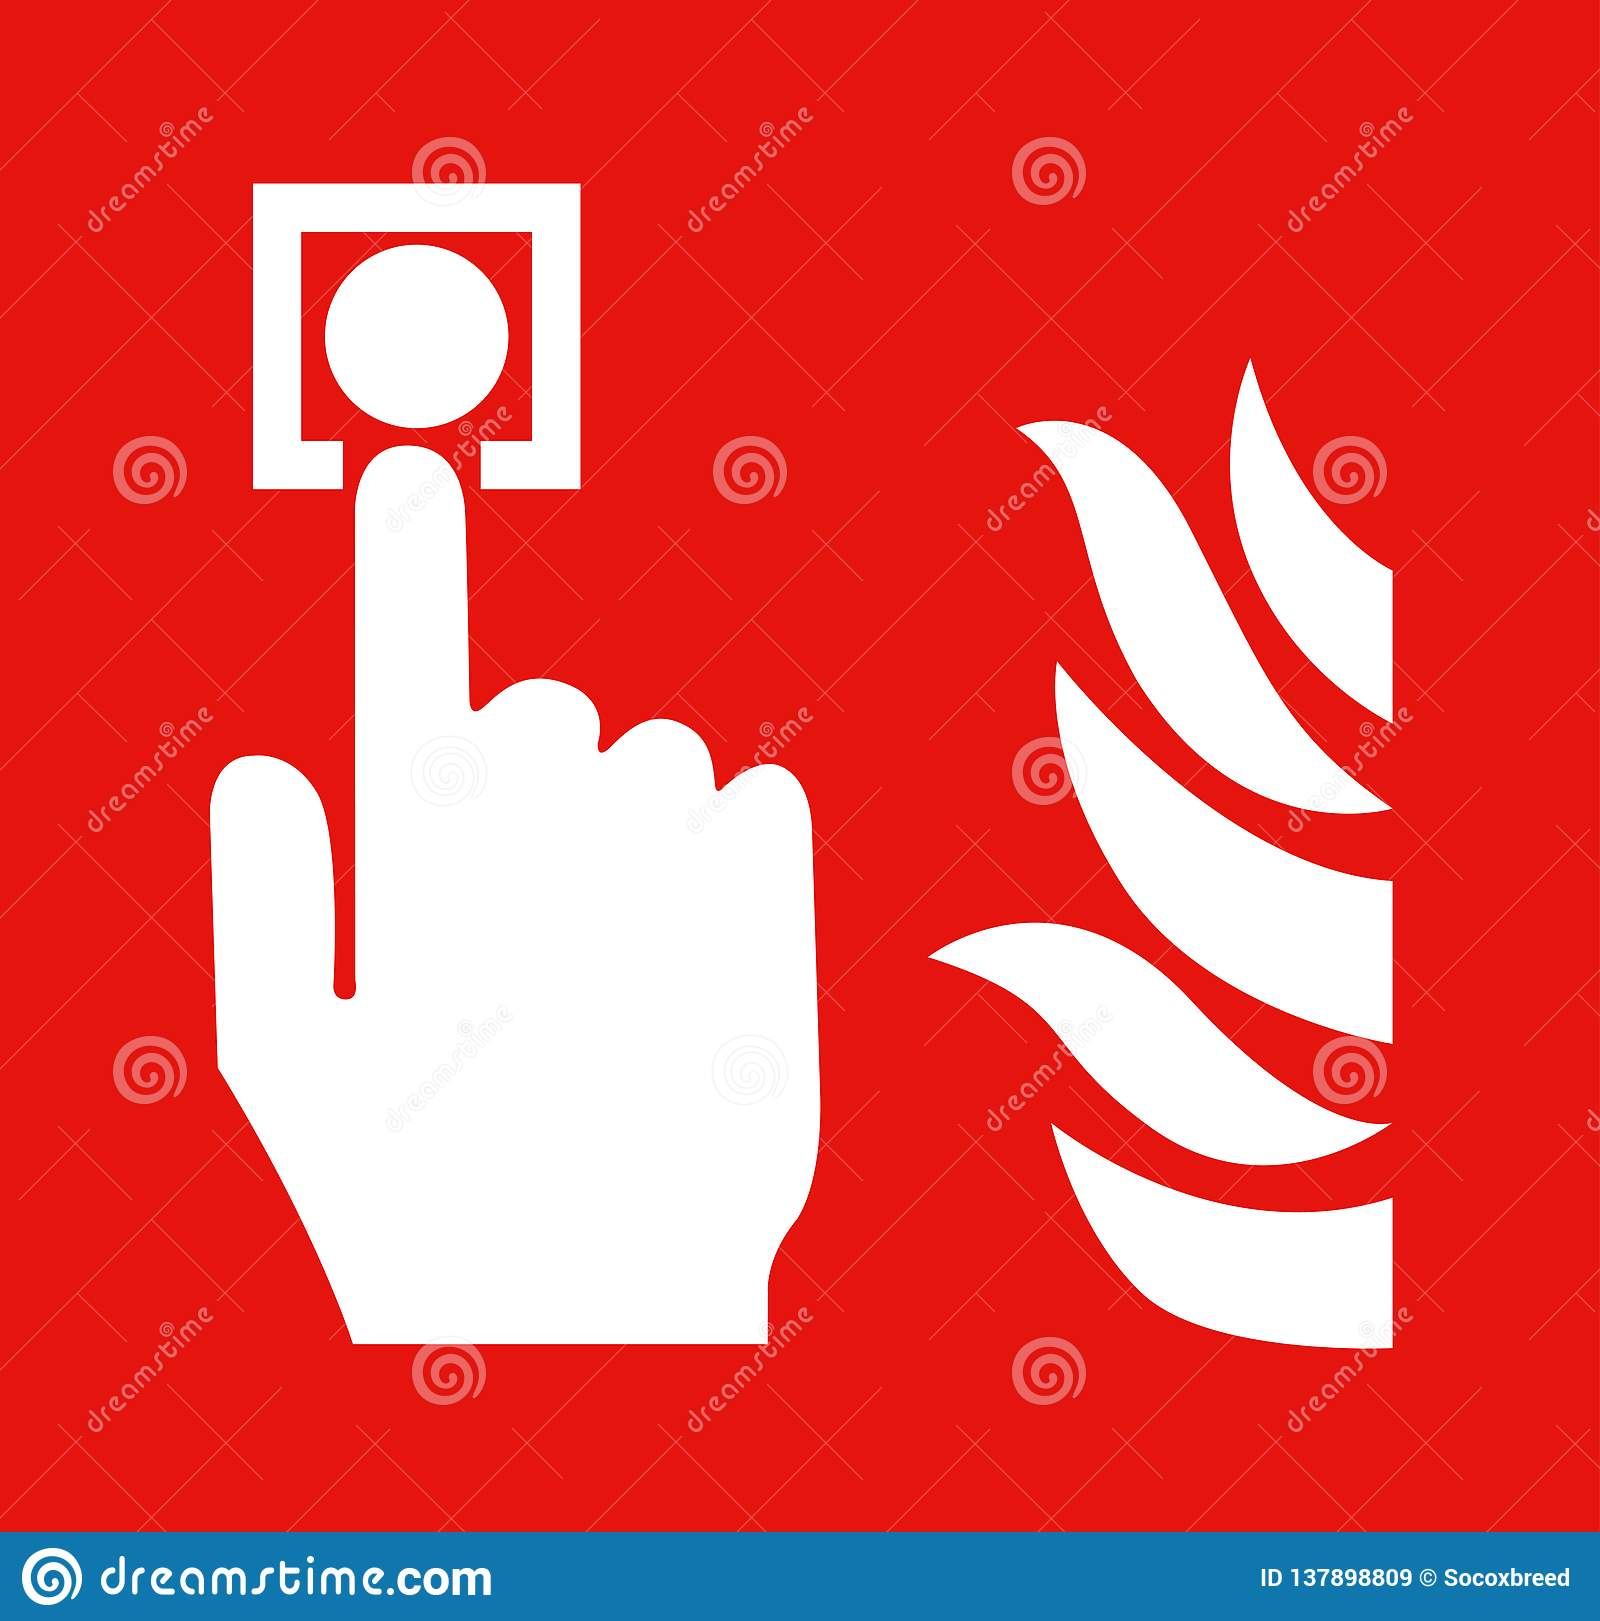 The hand is pushing fire alarm sign switch